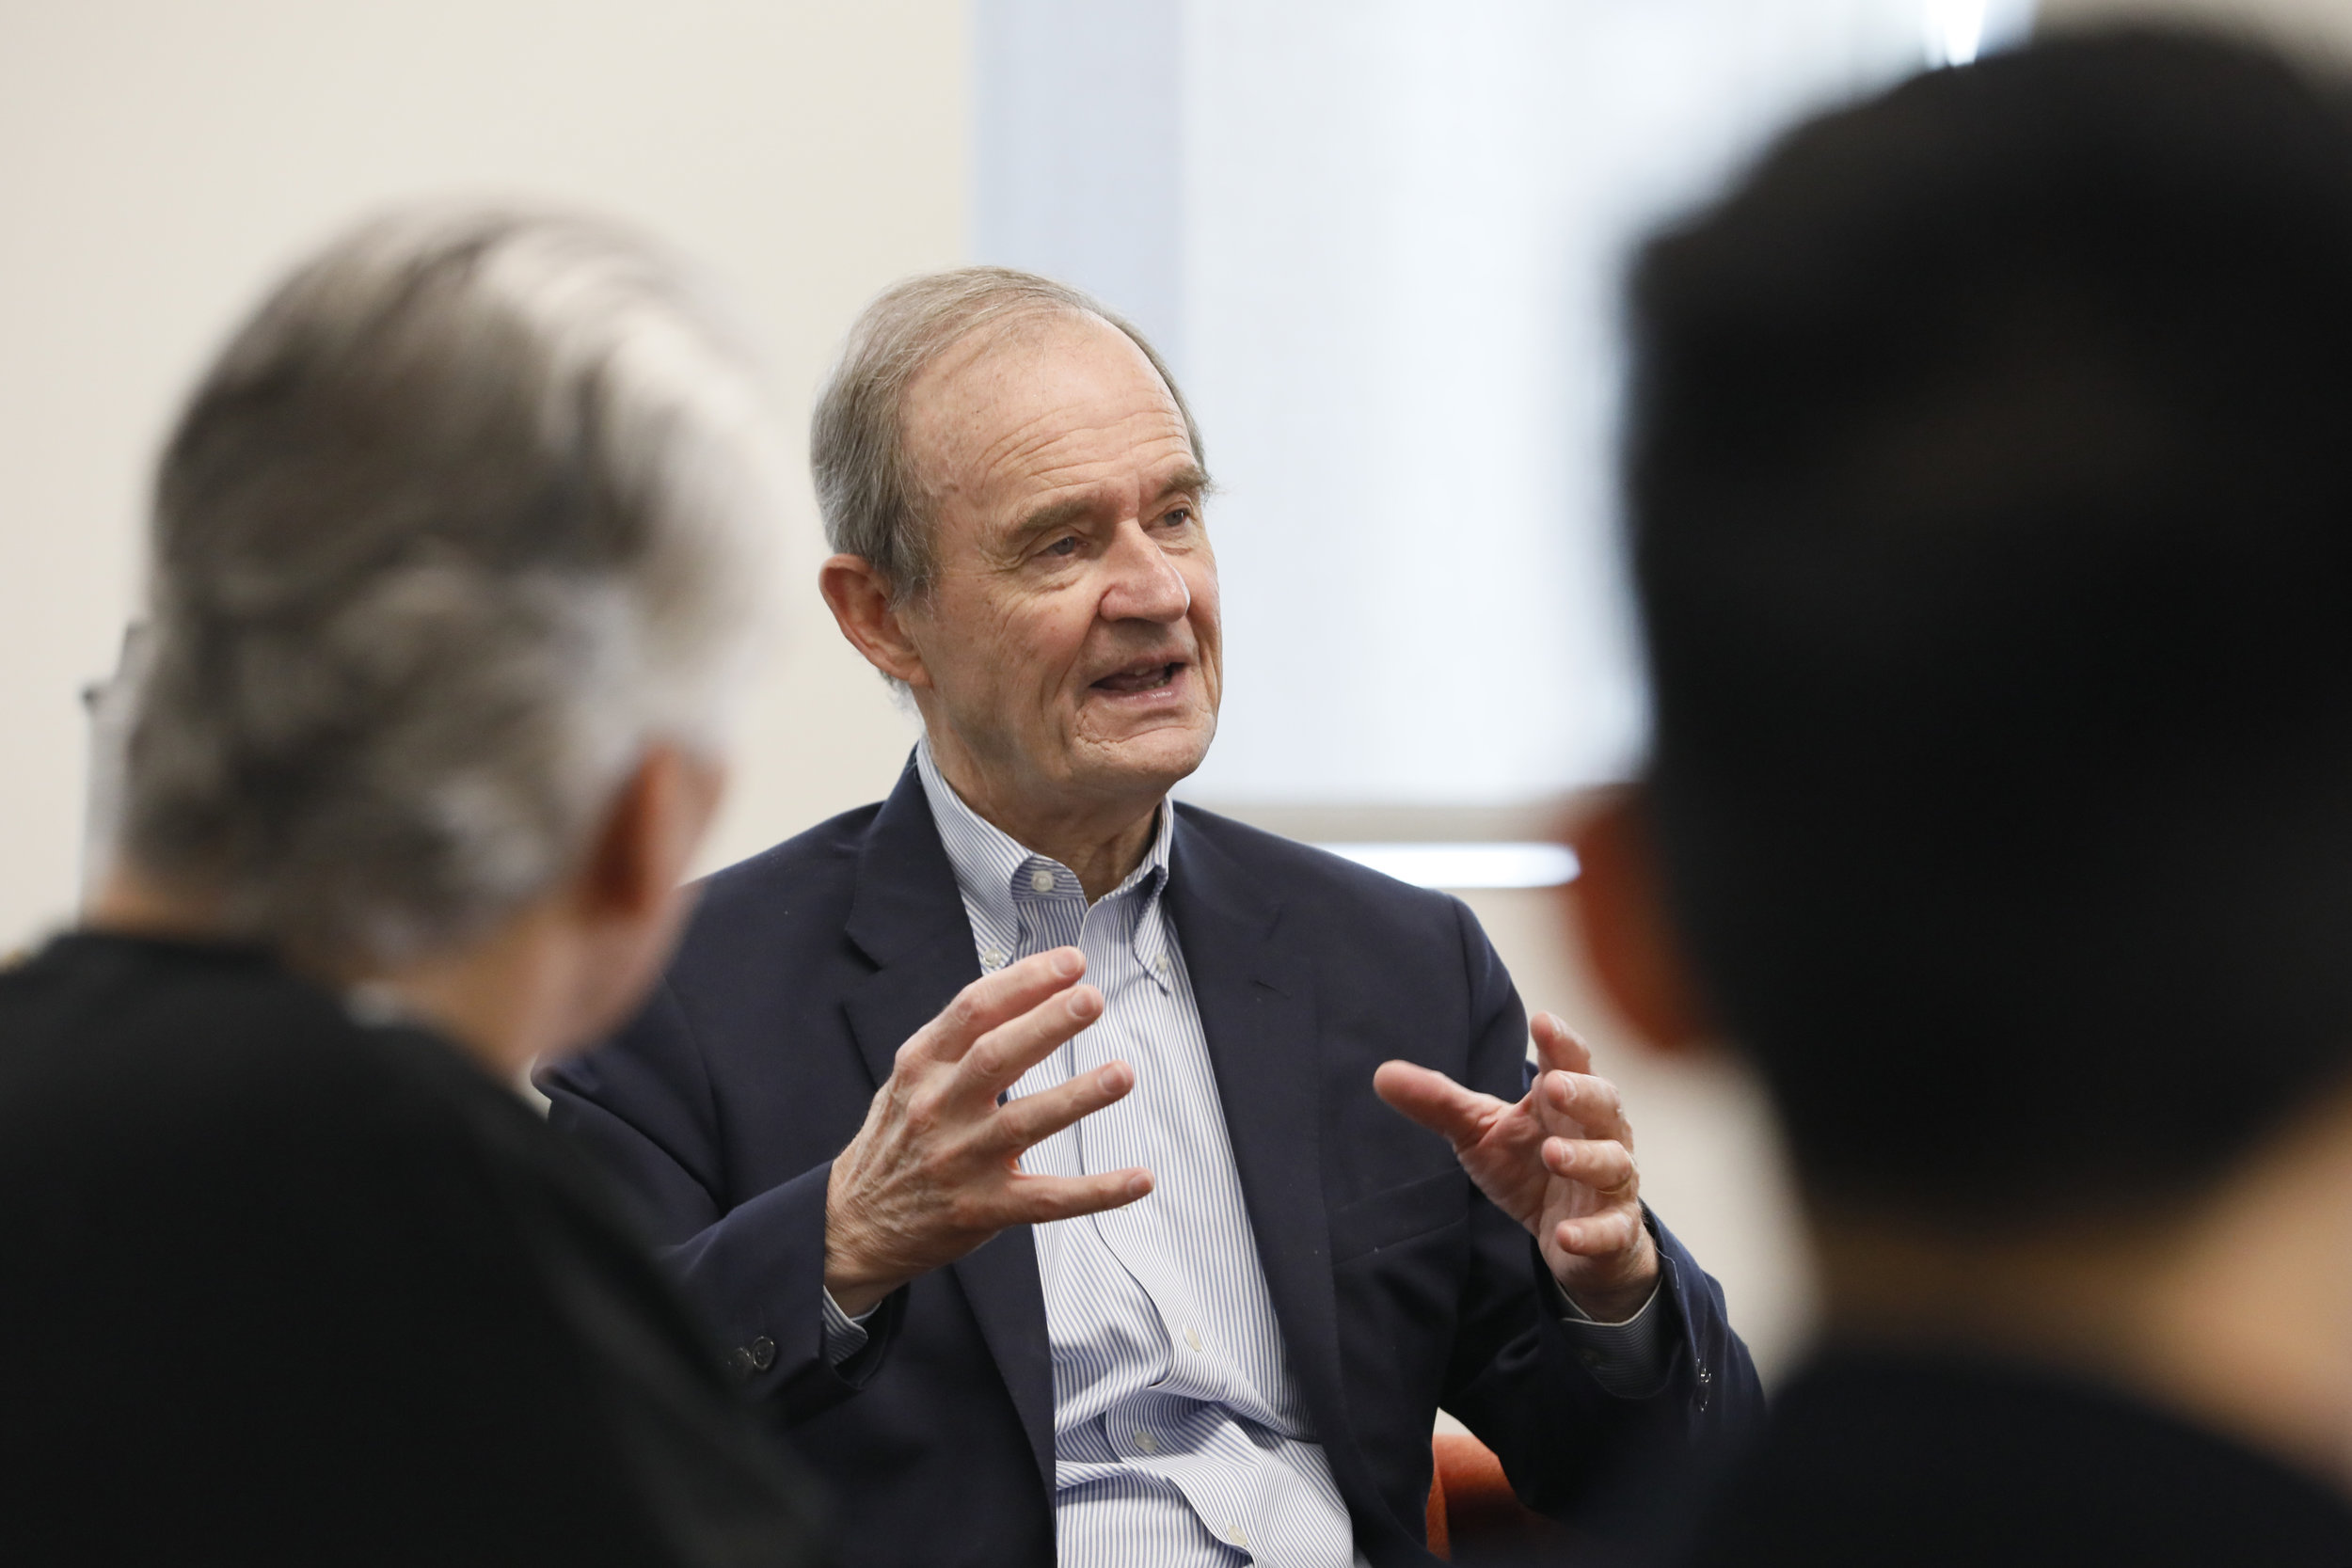 David Boies - Since 1997 David has been the Chairman of Boies Schiller Flexner. Prior to 1997 he was a partner at Cravath, Swaine & Moore. David has been selected as one of the 100 Most Influential People in the World by Time Magazine (2010). He has been named Global International Litigator of the Year by Who's Who Legal an unprecedented seven times, including in 2013.He is the recipient of Honorary Doctor of Laws from the University of Redlands (2000), New York Law School (2007), University of New Hampshire School of Law (2013), and New York University (2013) and an Honorary Doctor of Letters from the Chicago Theological Seminary (2011). His awards include the Award of Merit from the Yale Law School, the ABA Medal from the American Bar Association, the Vanderbilt Medal from New York University Law School, the Pinnacle Award from the International Dyslexia Association, the William Brennan Award from the University of Virginia, the Role Model Award from Equality Forum, the Lead by Example Award from the National Association of Women Lawyers, the Torch of Learning Award from the American Friends of Hebrew University, the Eisendrath Bearer of Light Award from the Union for Reform Judaism, and a Lifetime Achievement Award from the Mississippi Center for Justice. David has been named the Litigator of the Year by The American Lawyer; the Lawyer of the Year by The National Law Journal; runner-up Person of the Year by Time Magazine; the Antitrust Lawyer of the Year by the New York Bar Association; Best Lawyers in America from 1987-2019; Lawdragon 500 Leading Lawyers; and a Star Individual by Chambers USA. He was named one of the Top 50 Big Law Innovators of the Last 50 Years by The American Lawyer in 2013.David served as Chief Counsel and Staff Director of the United States Senate Antitrust Subcommittee in 1978 and Chief Counsel and Staff Director of the United States Senate Judiciary Committee in 1979. In 1991-1993, he was counsel to the Federal Deposit Insurance Corporati